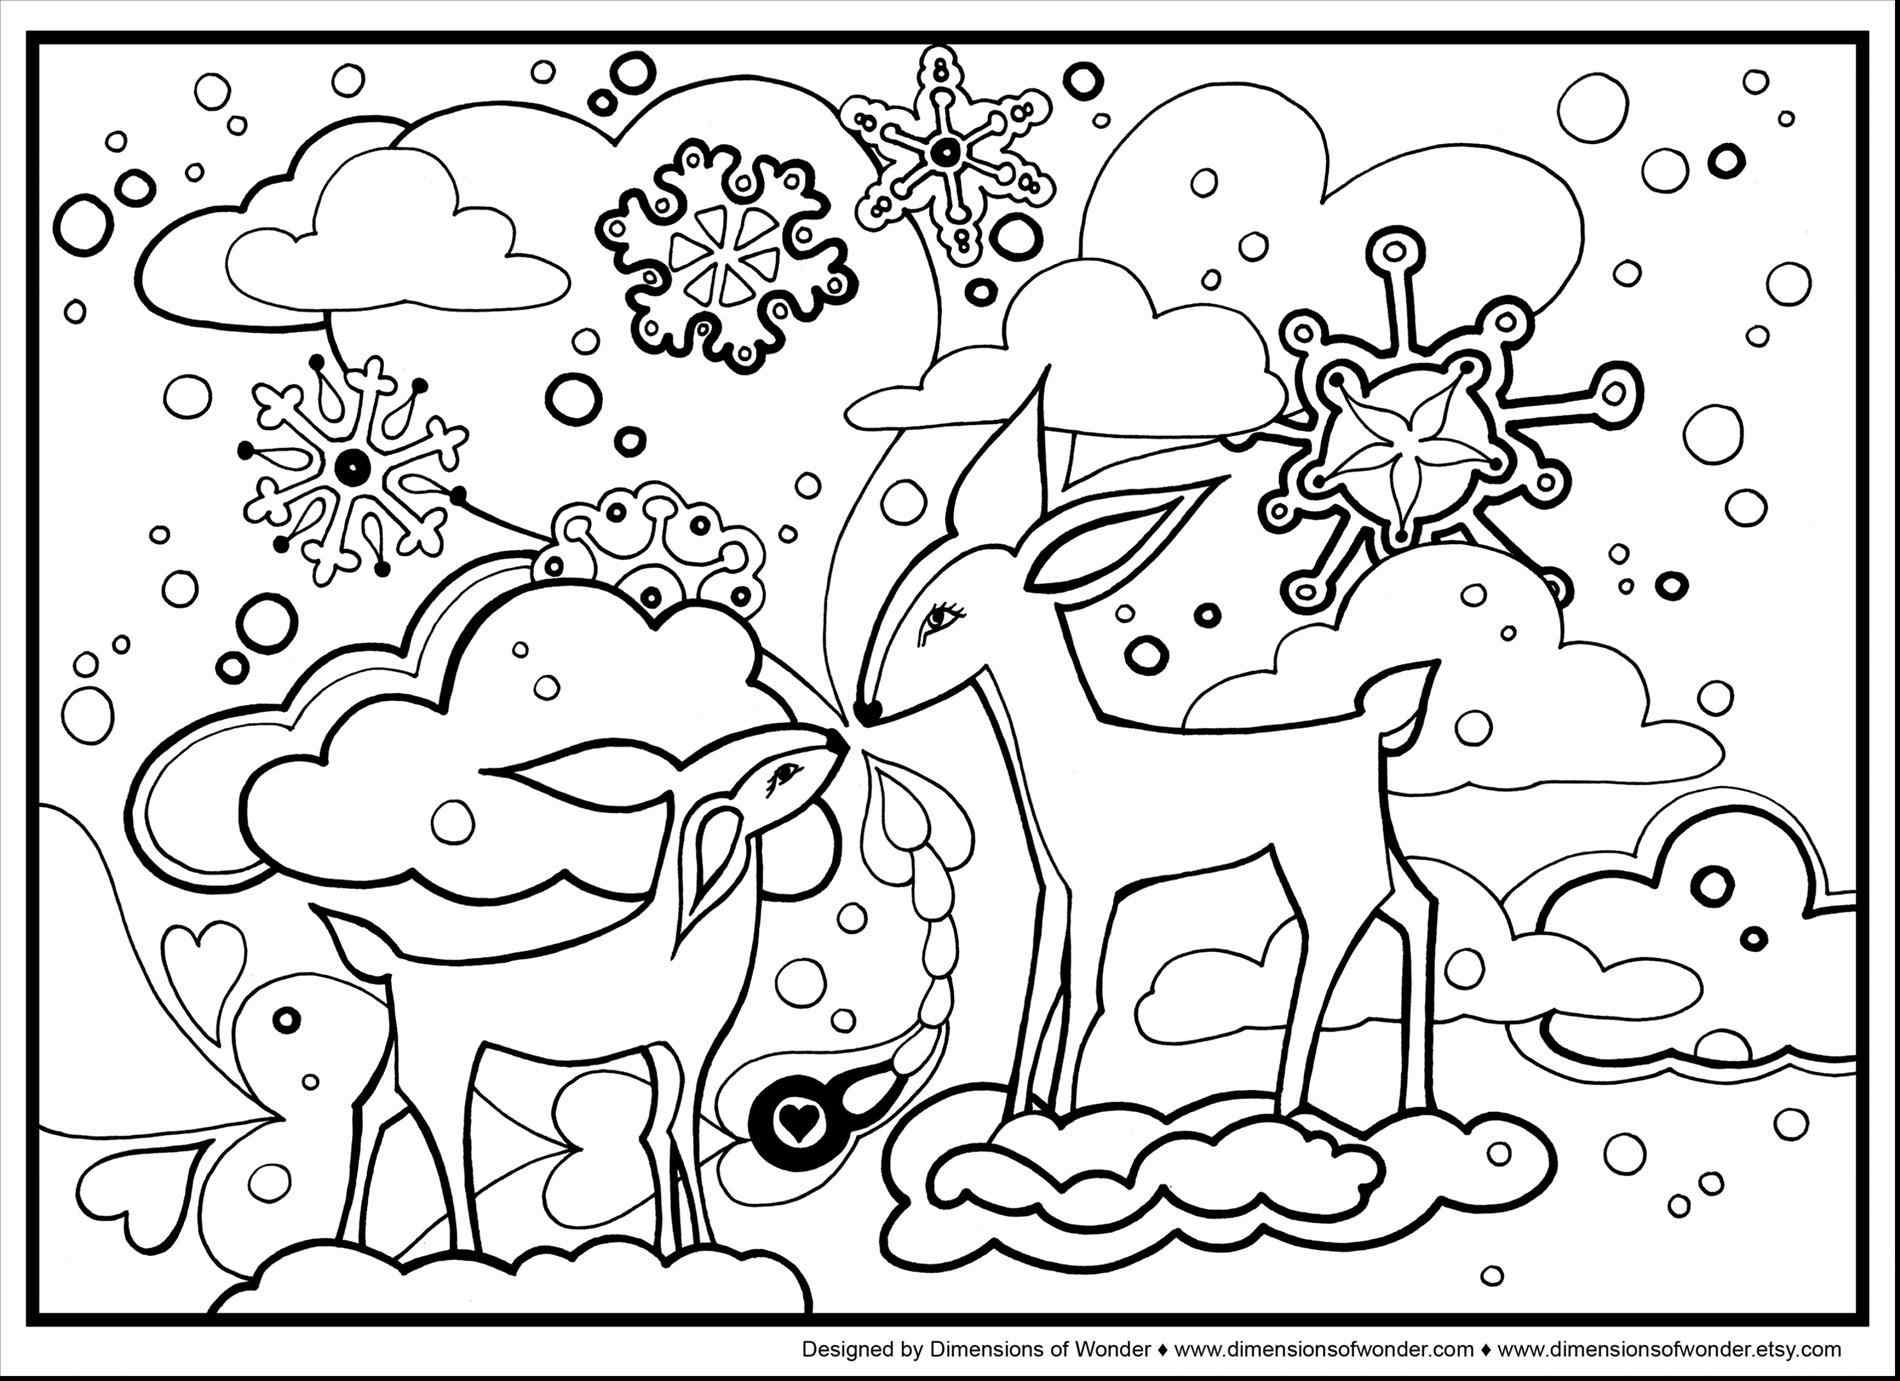 1900x1381 Drawing For Kids S Time Ana Teo And Matias Download Coloring Pages